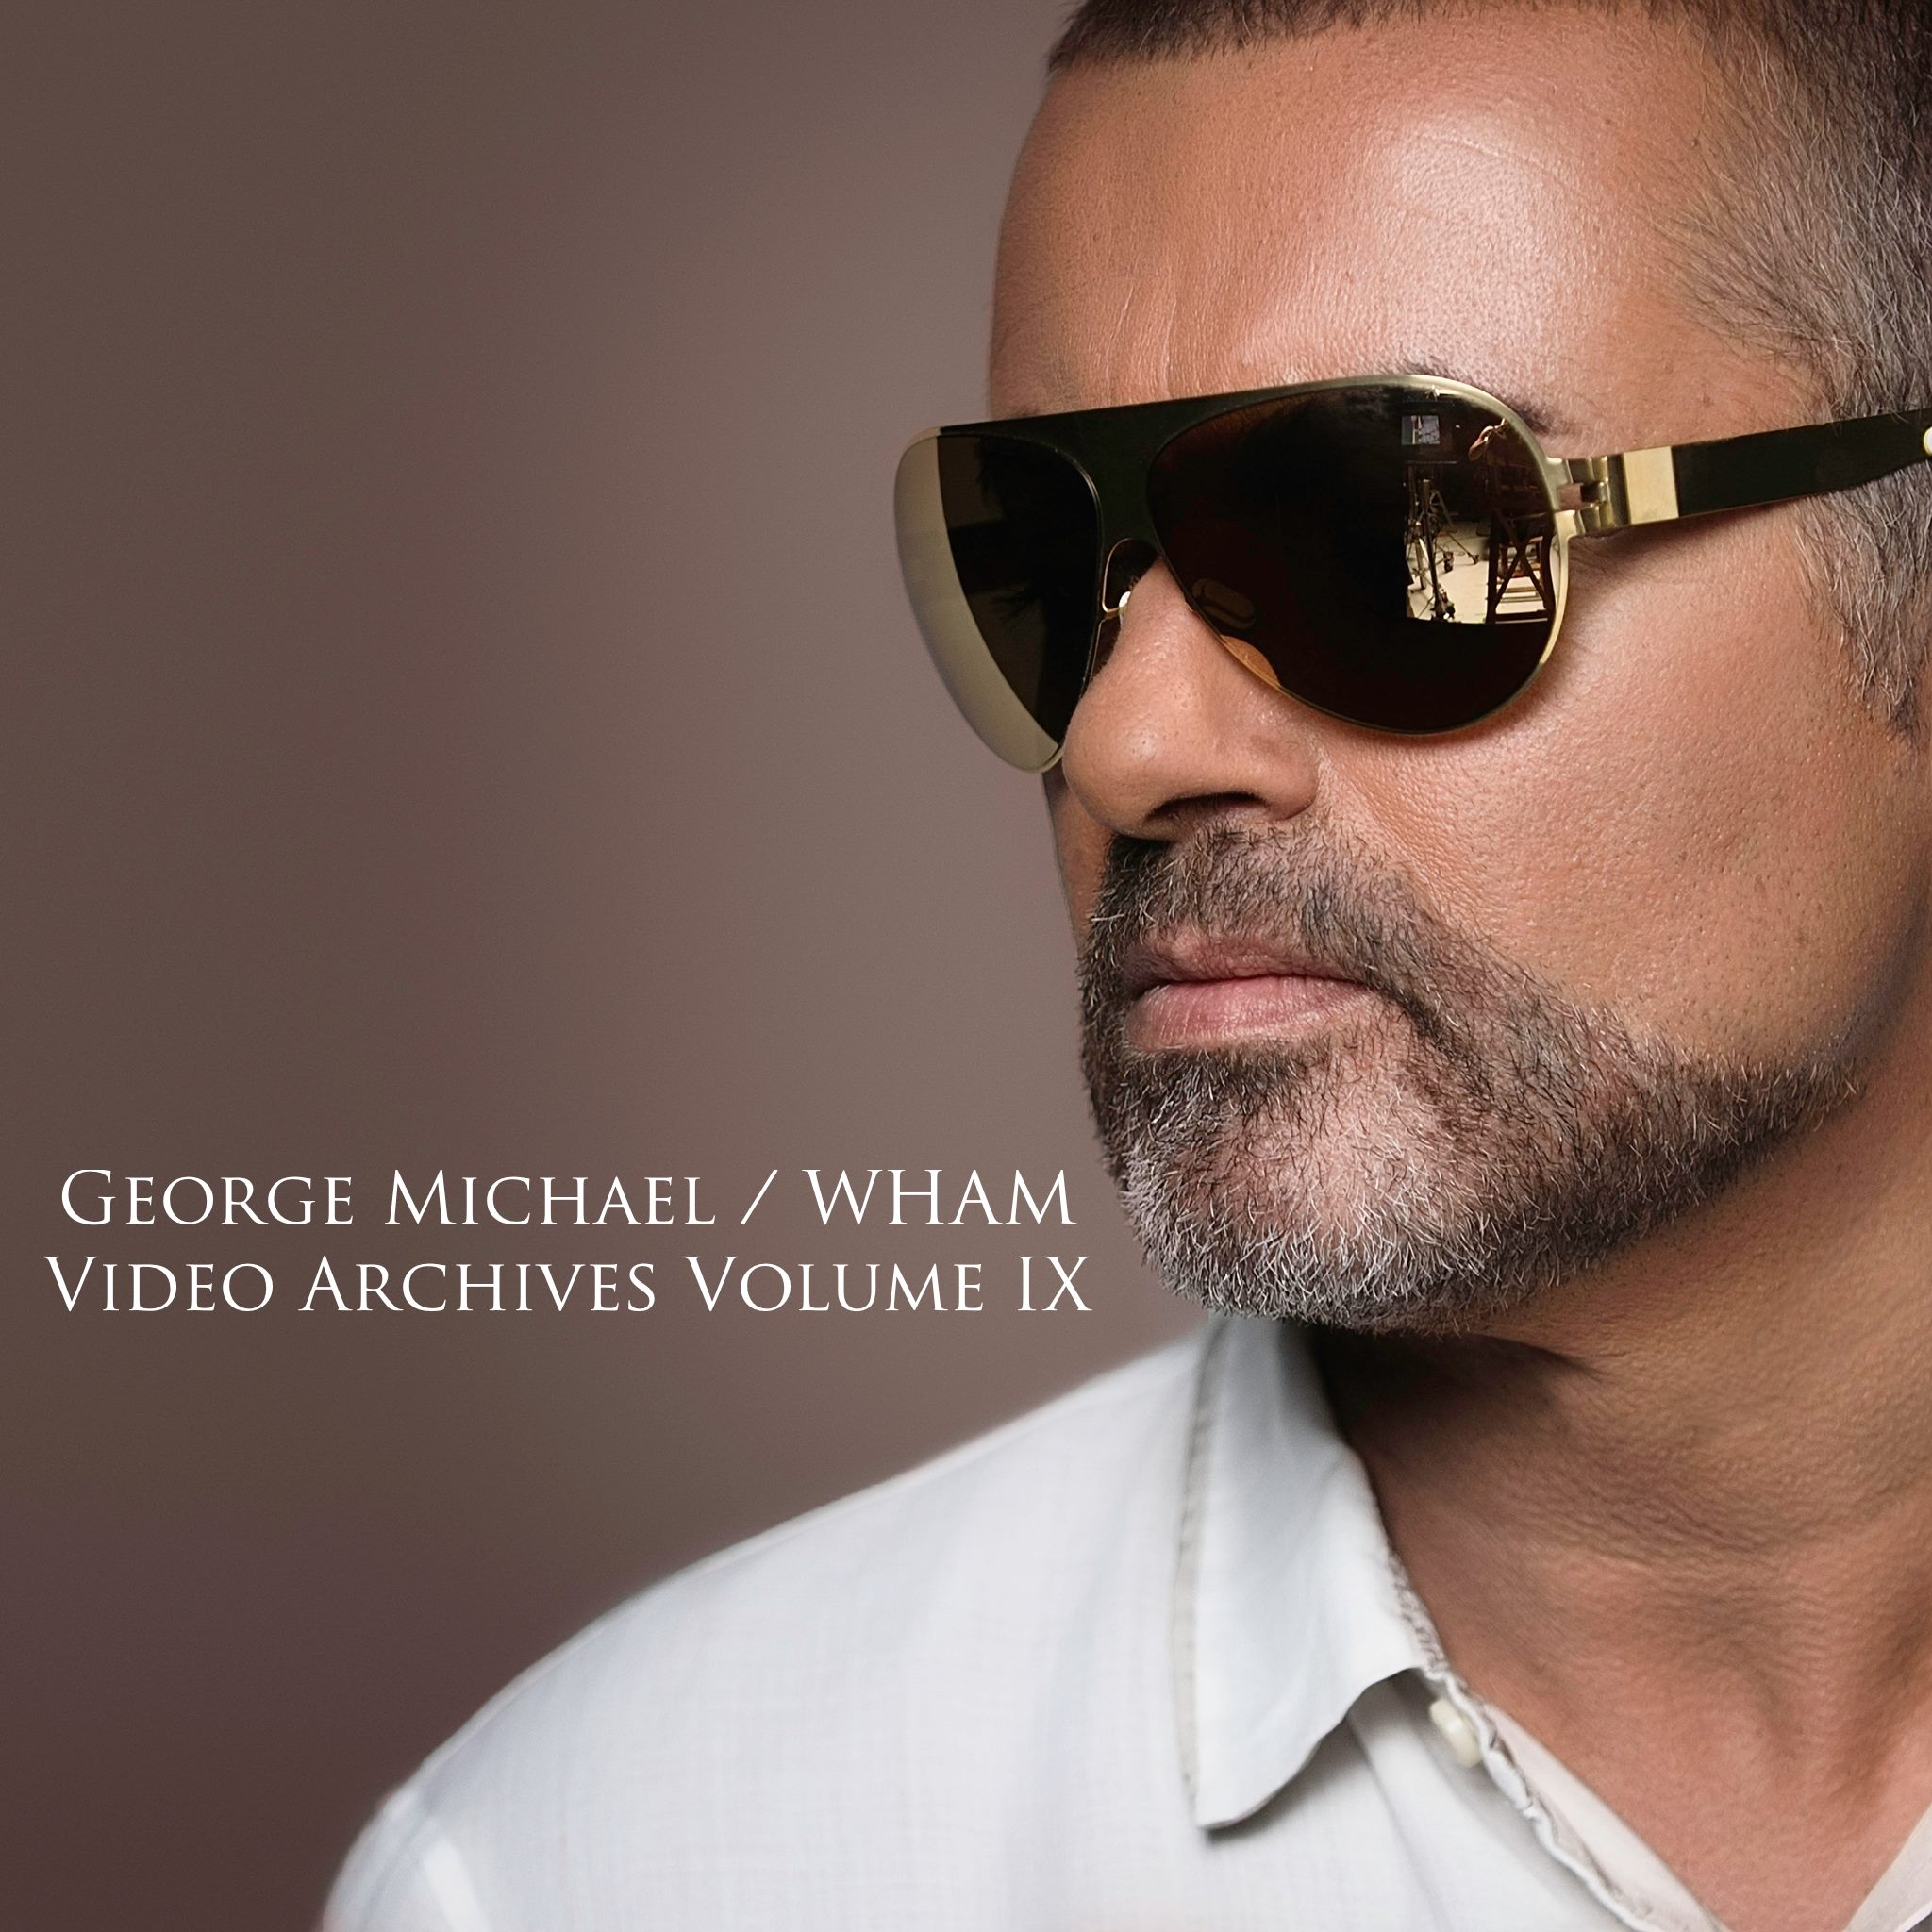 George Michael Memorium & 2018 Documentary Video Archives 2017-2018 Volume  IX (Wham!)